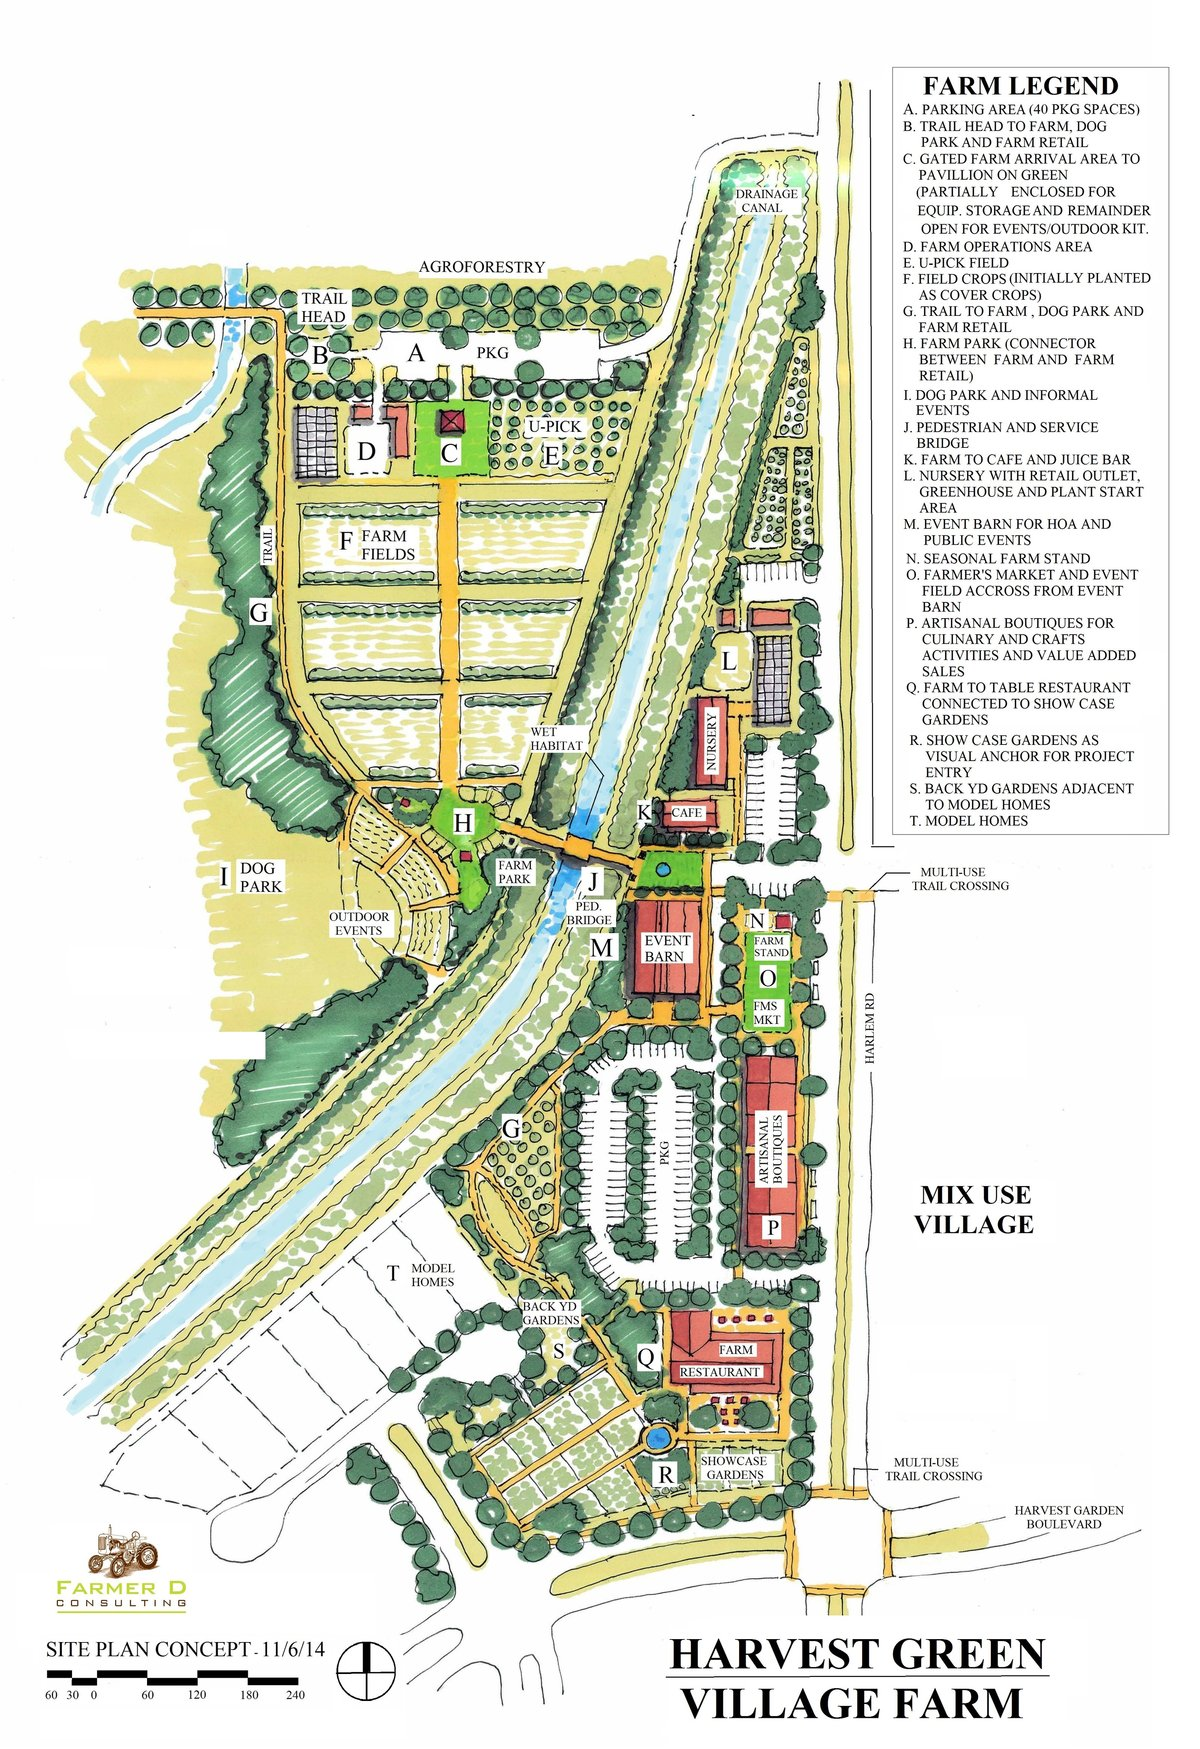 Harvest Green Site Plan 11-11-14